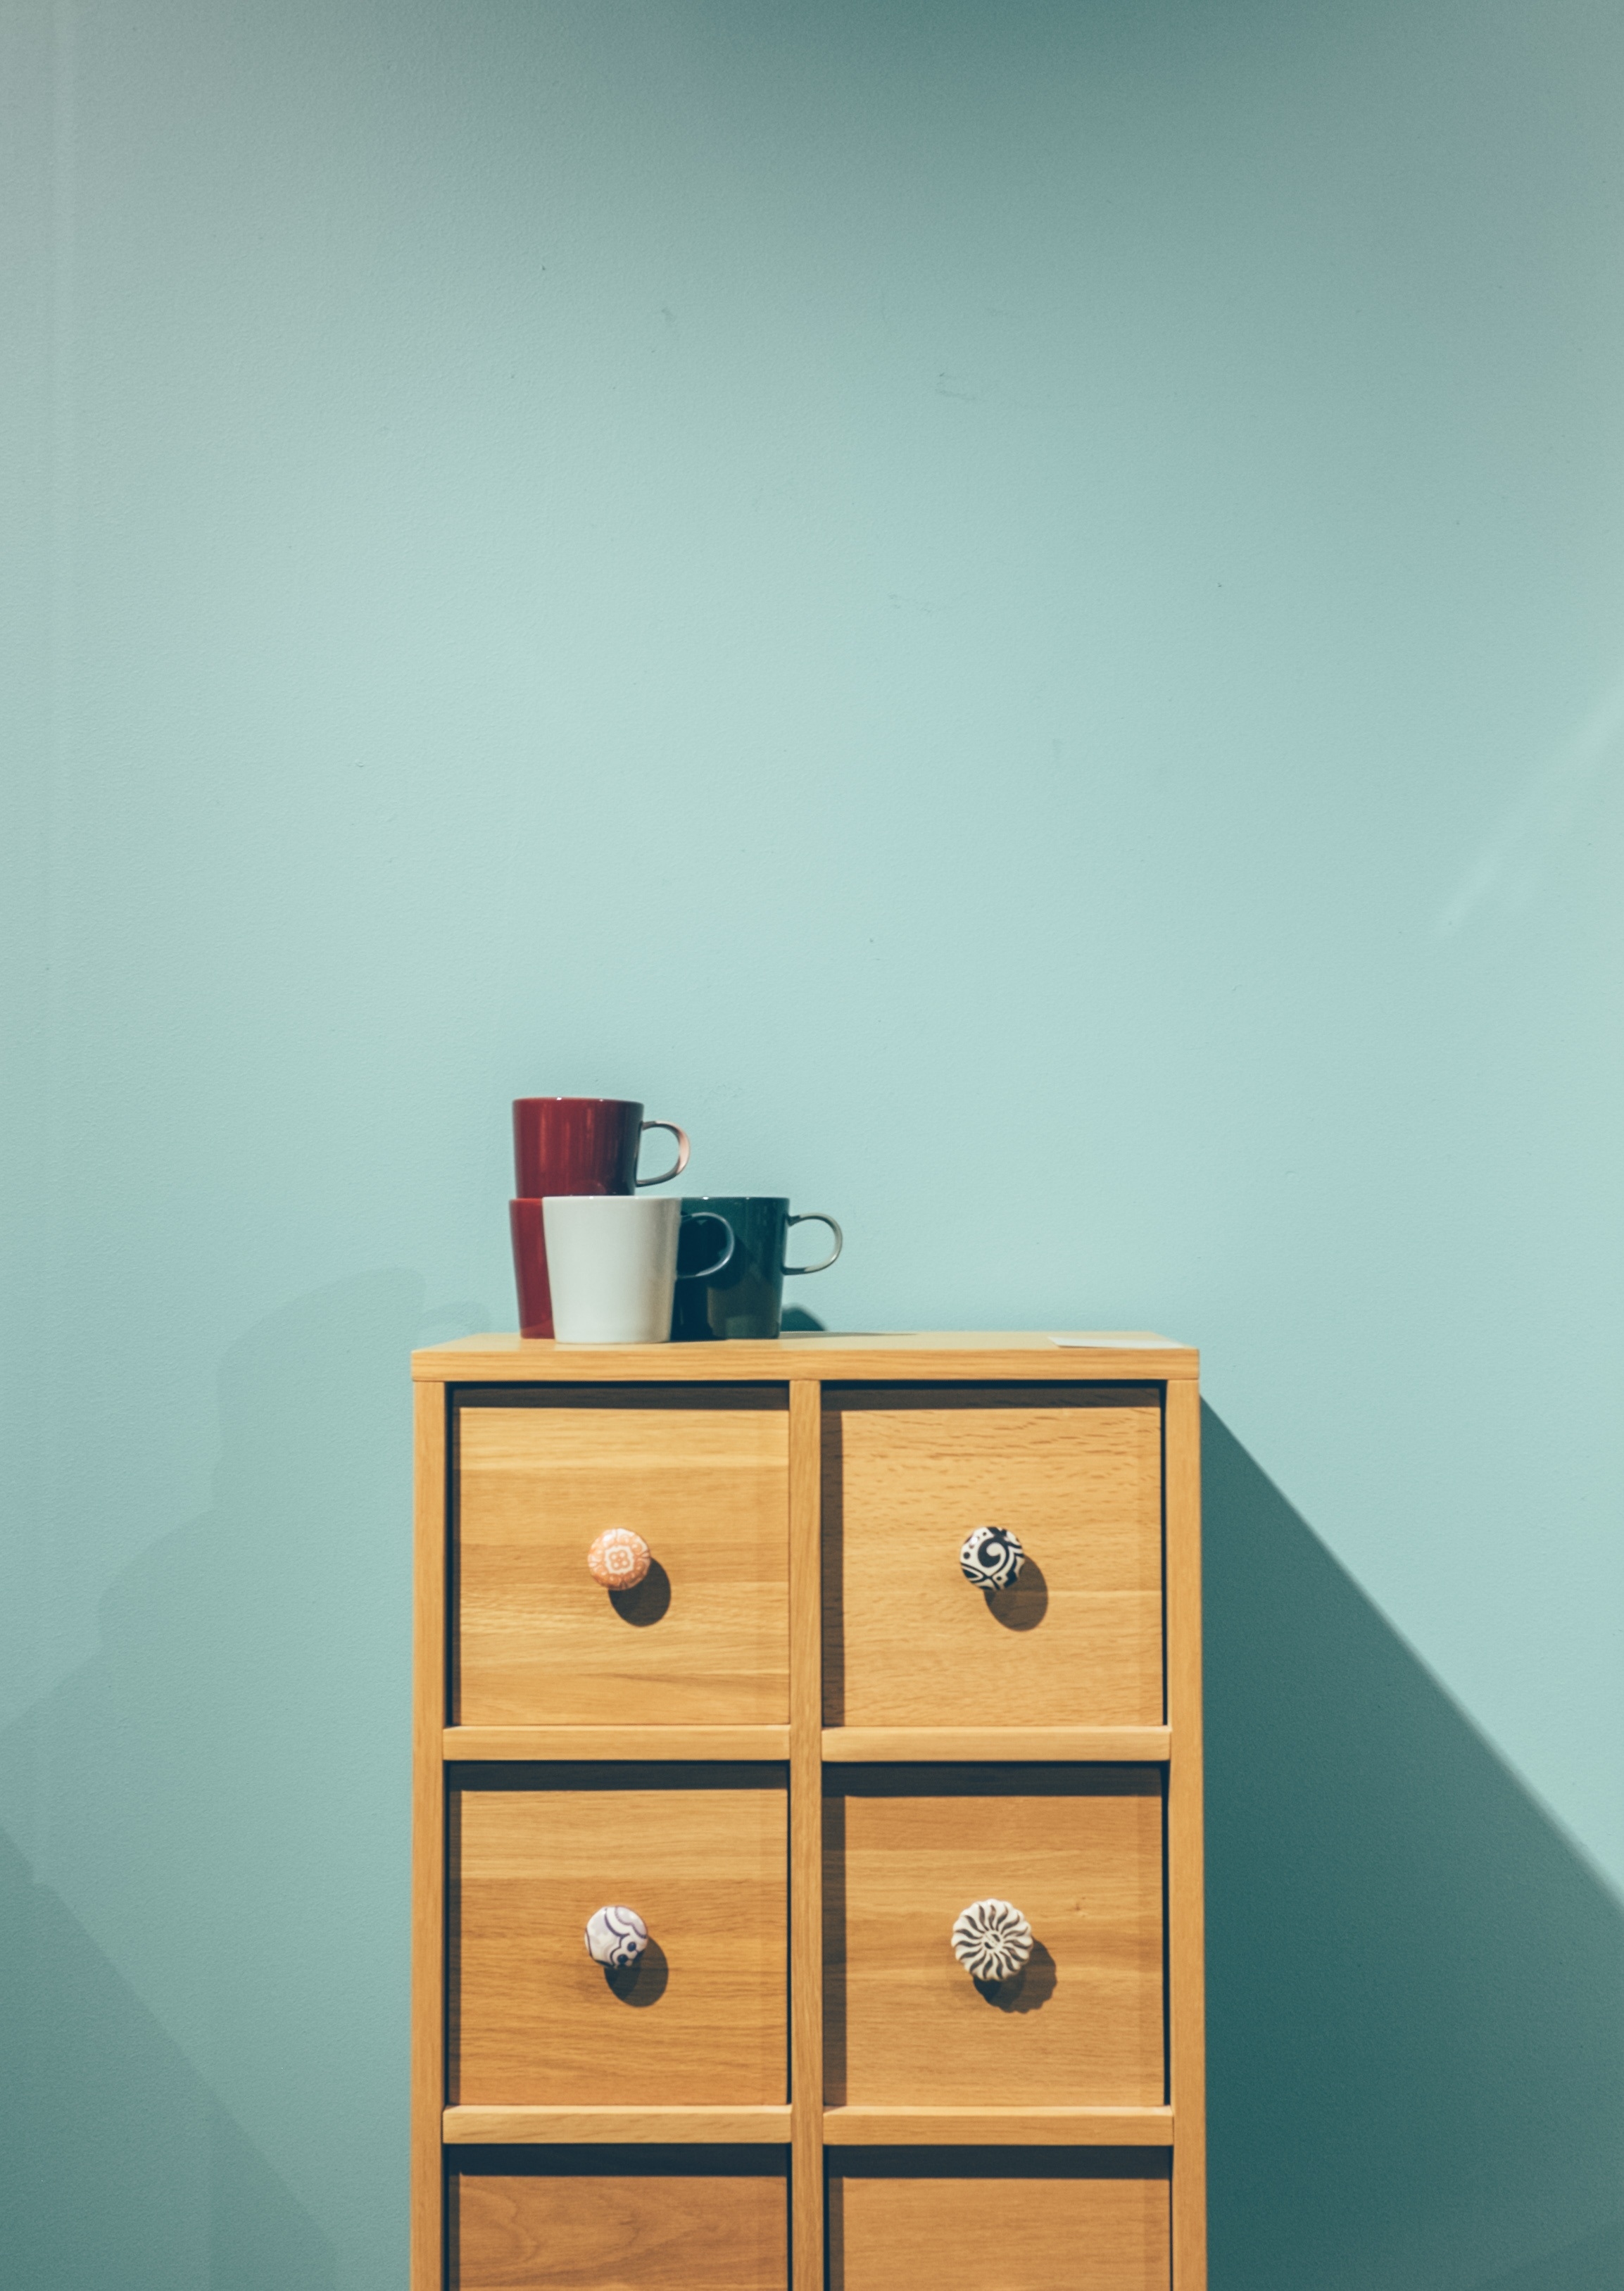 Free stock photo of wall, house, inside, cups